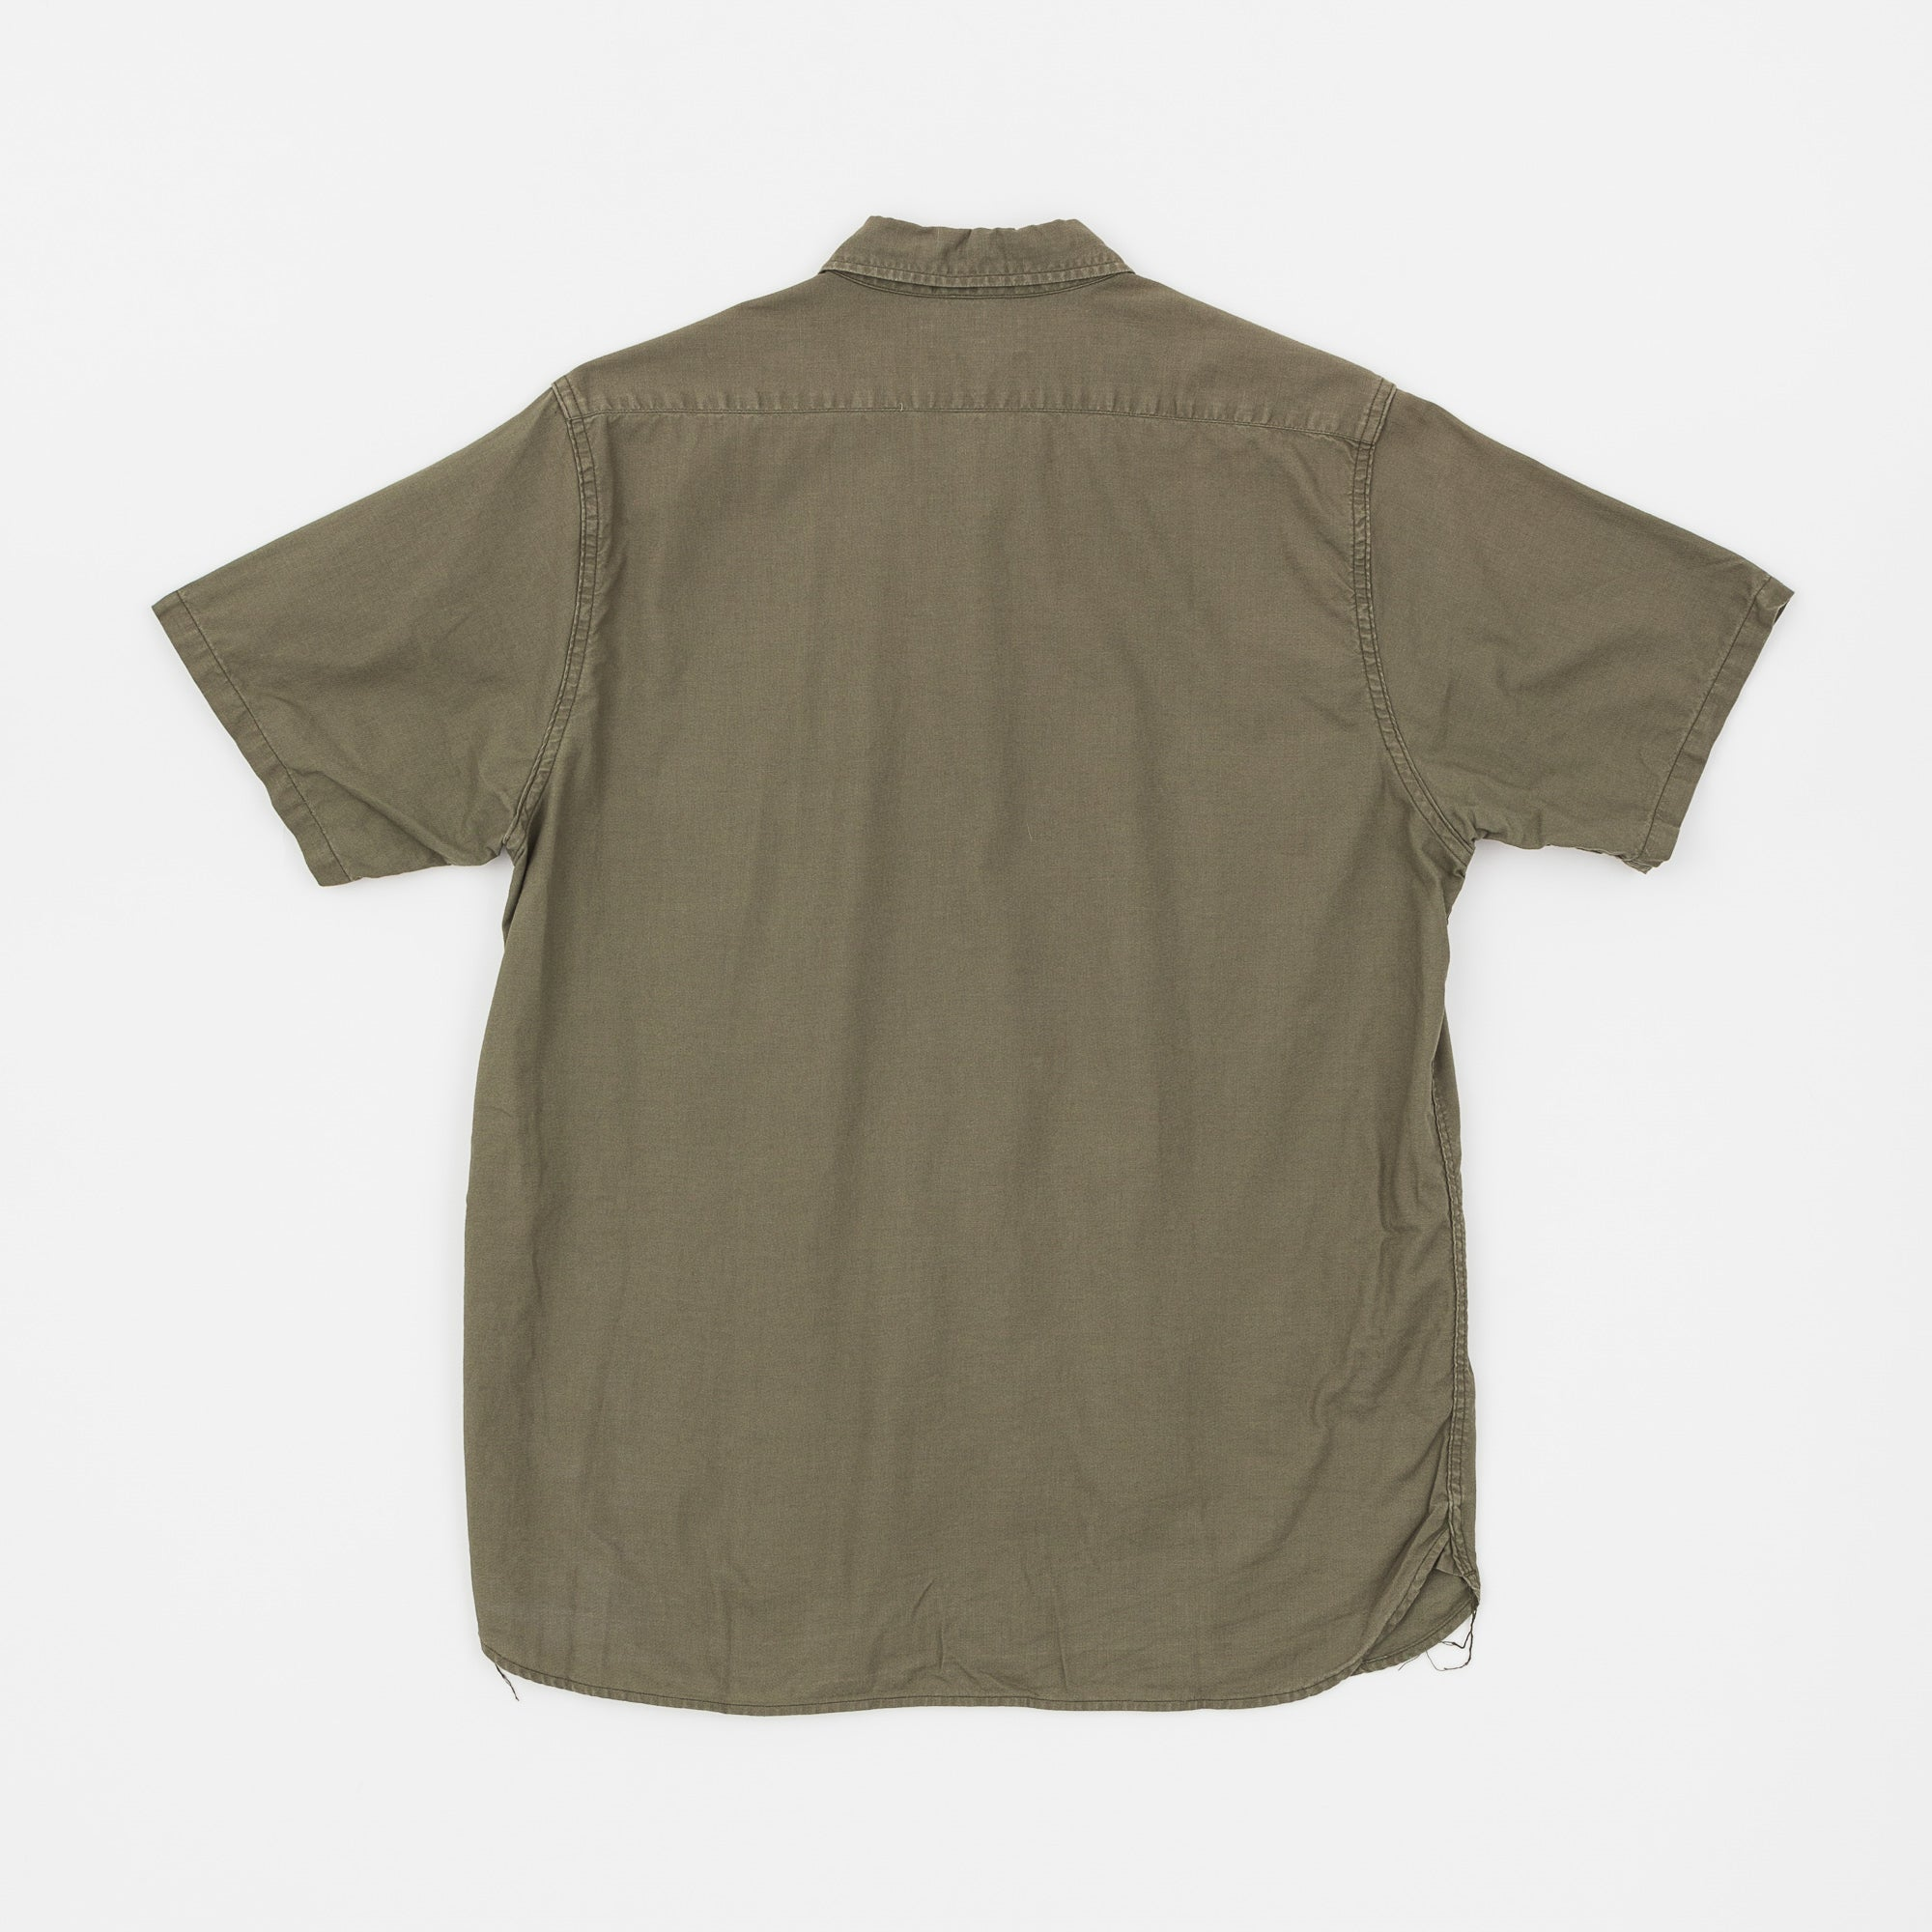 The Real McCoy's N-3 Short Sleeve Utility Shirt